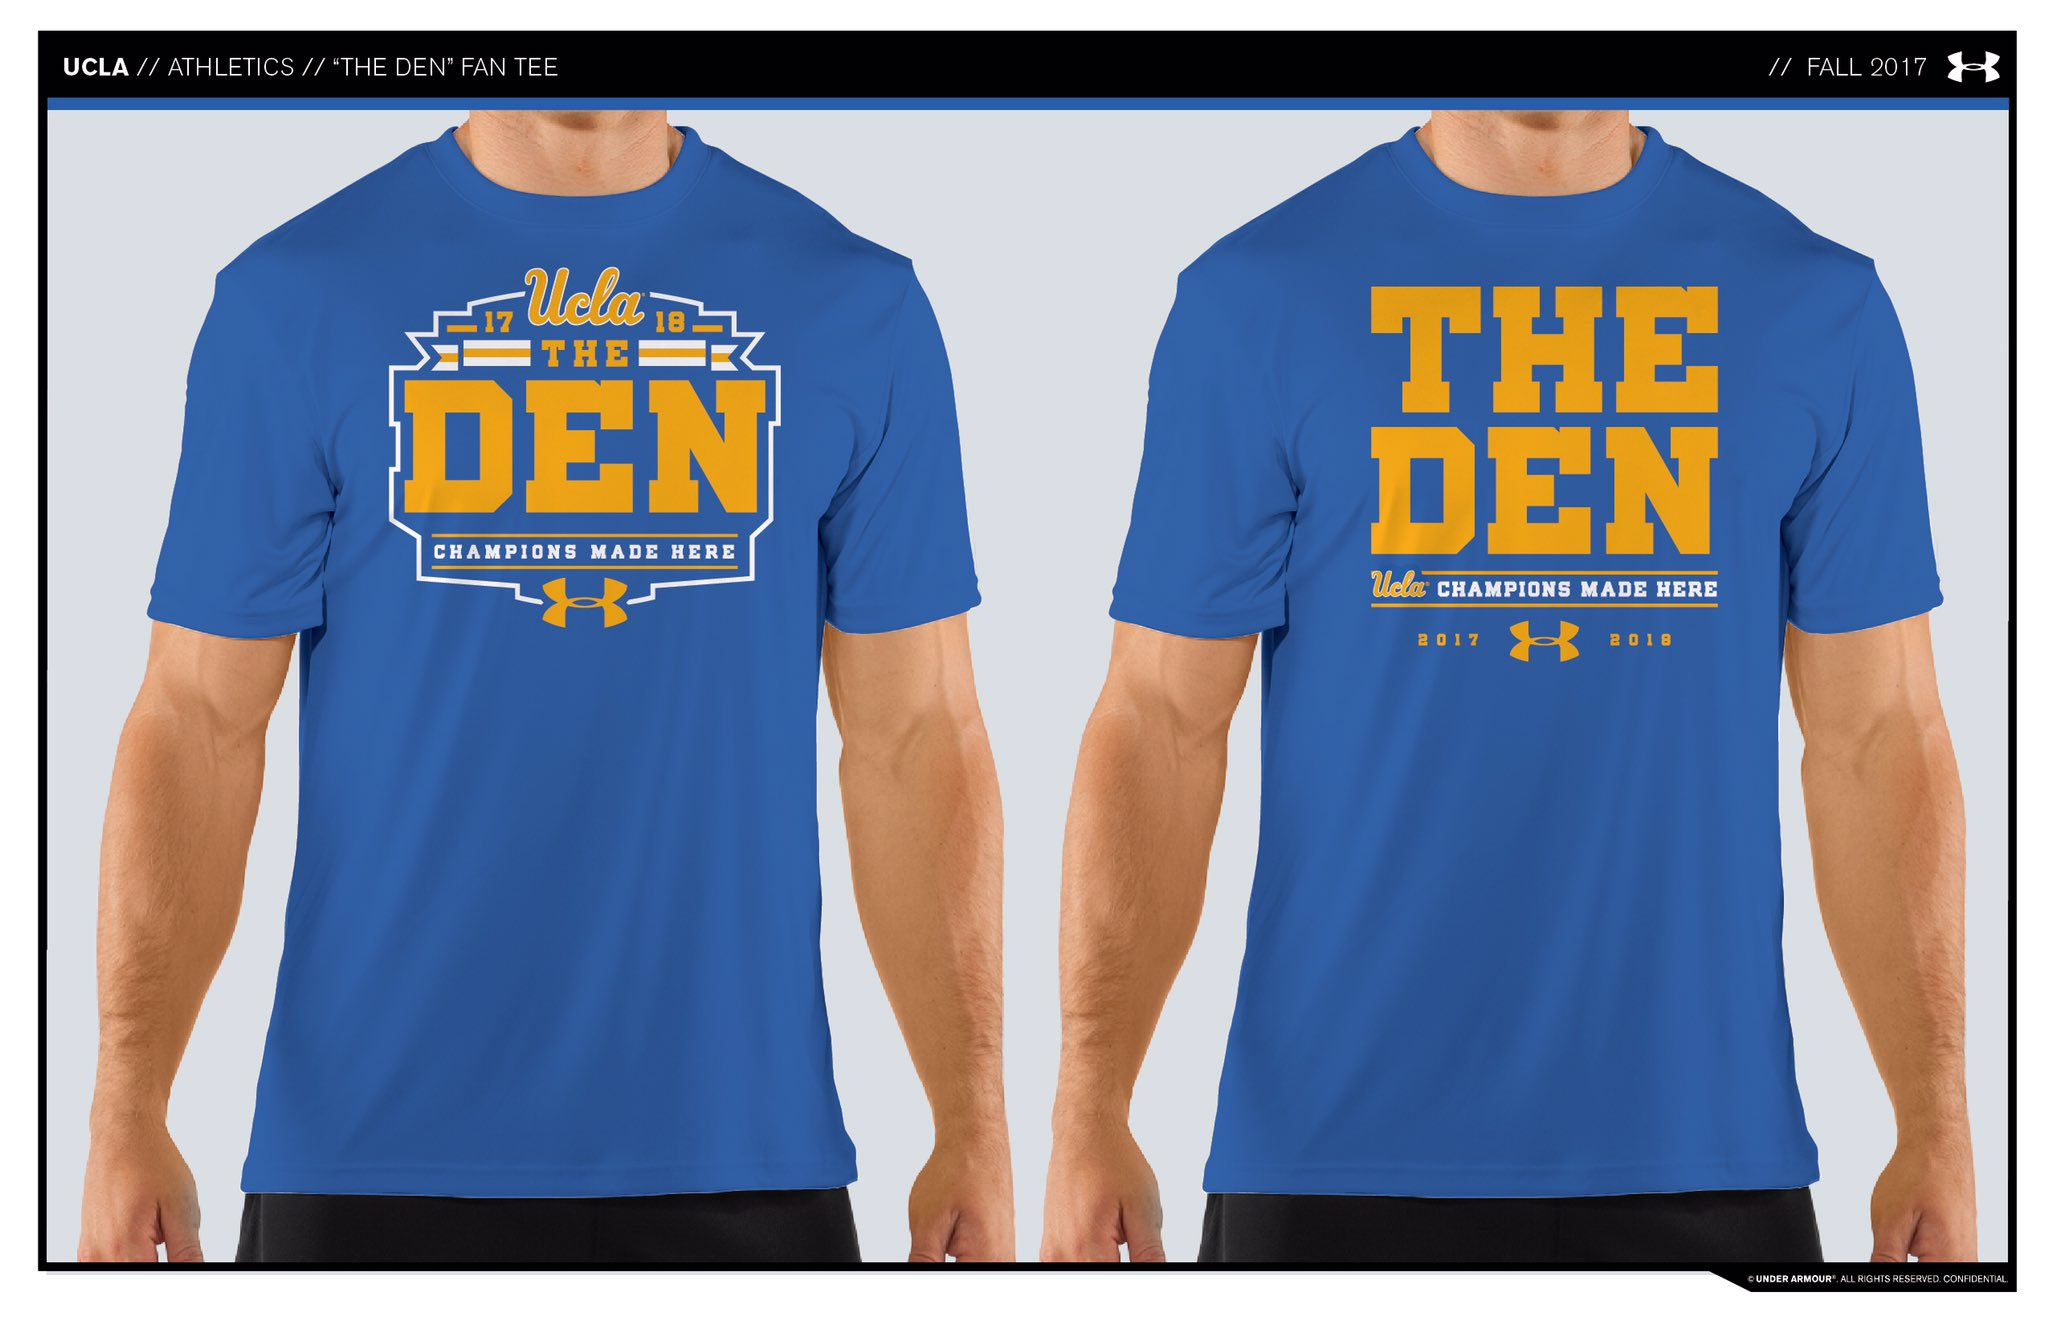 @UnderArmour DEN SHIRT DESIGNS ������  Make sure you vote above in the poll for your favorite! https://t.co/6vQlZzk145